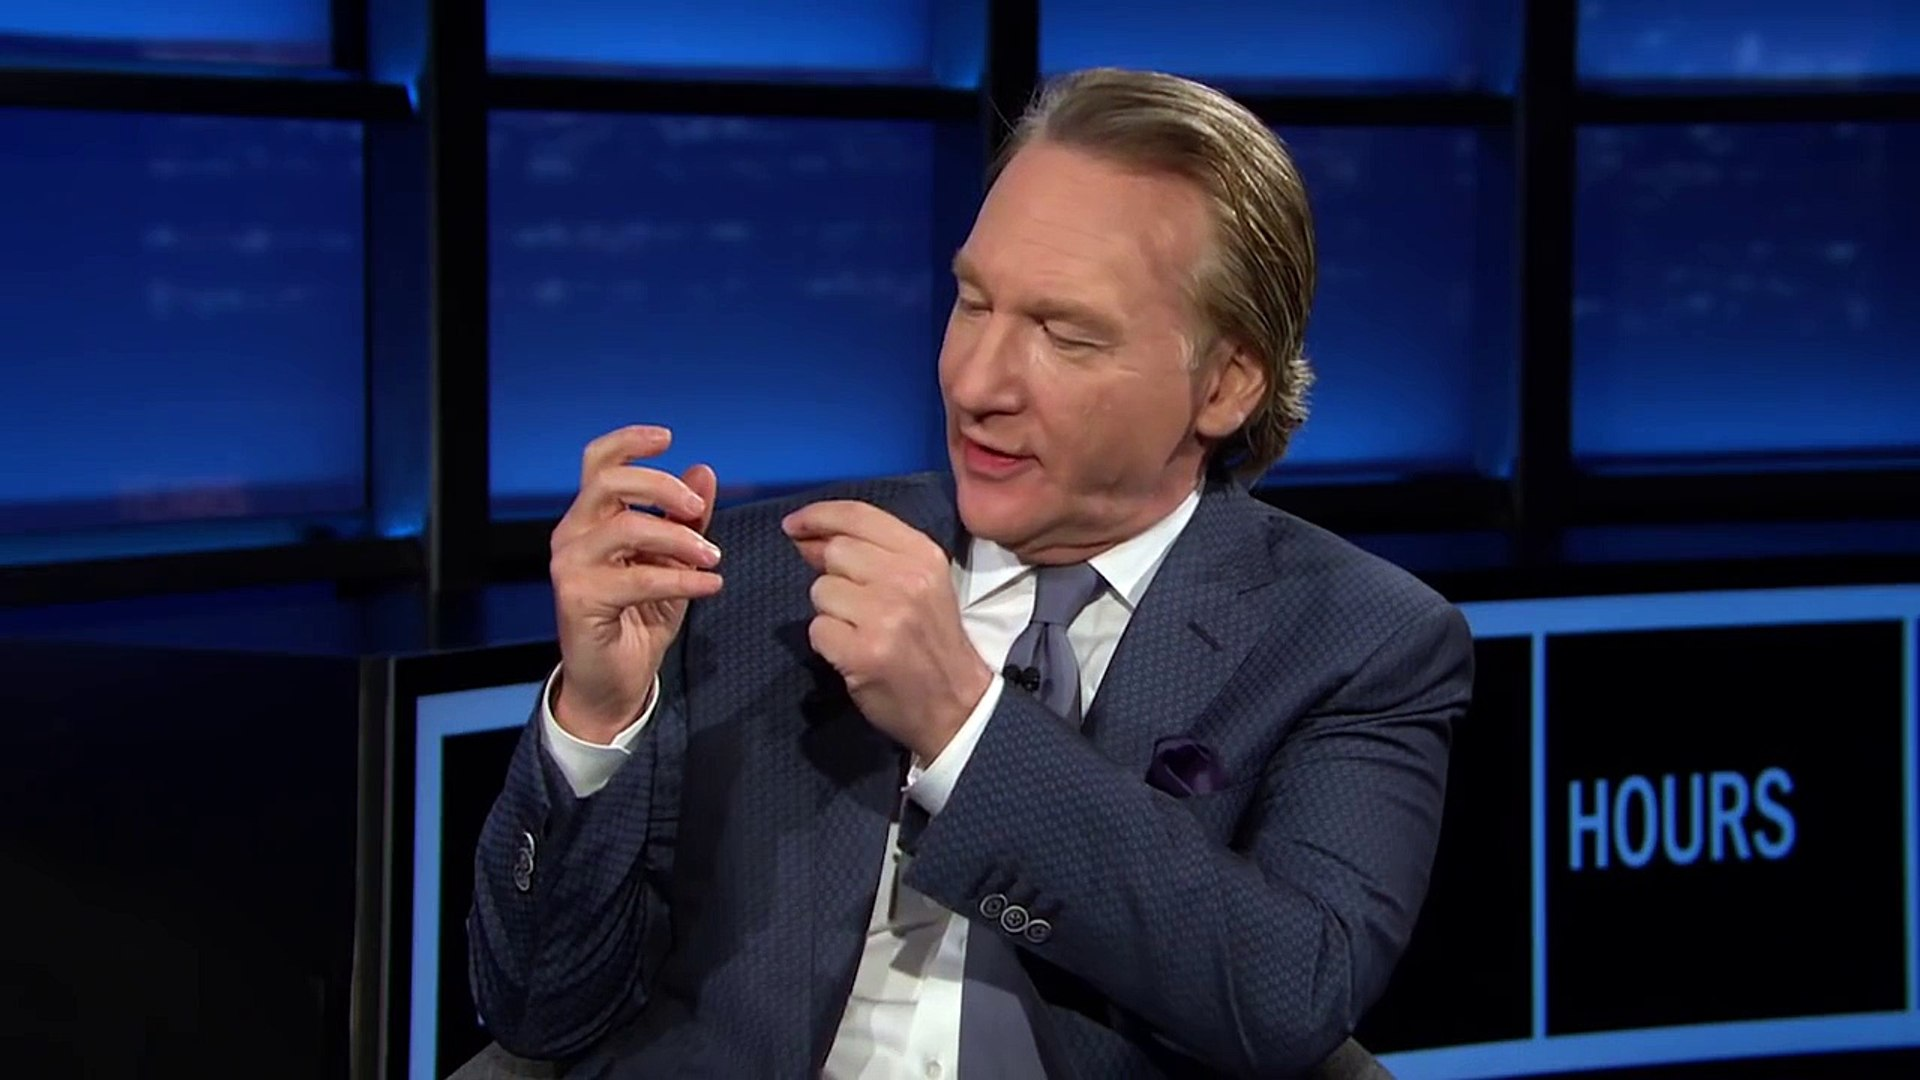 Real Time with Bill Maher: Ed Begley Jr. on Bees (HBO)